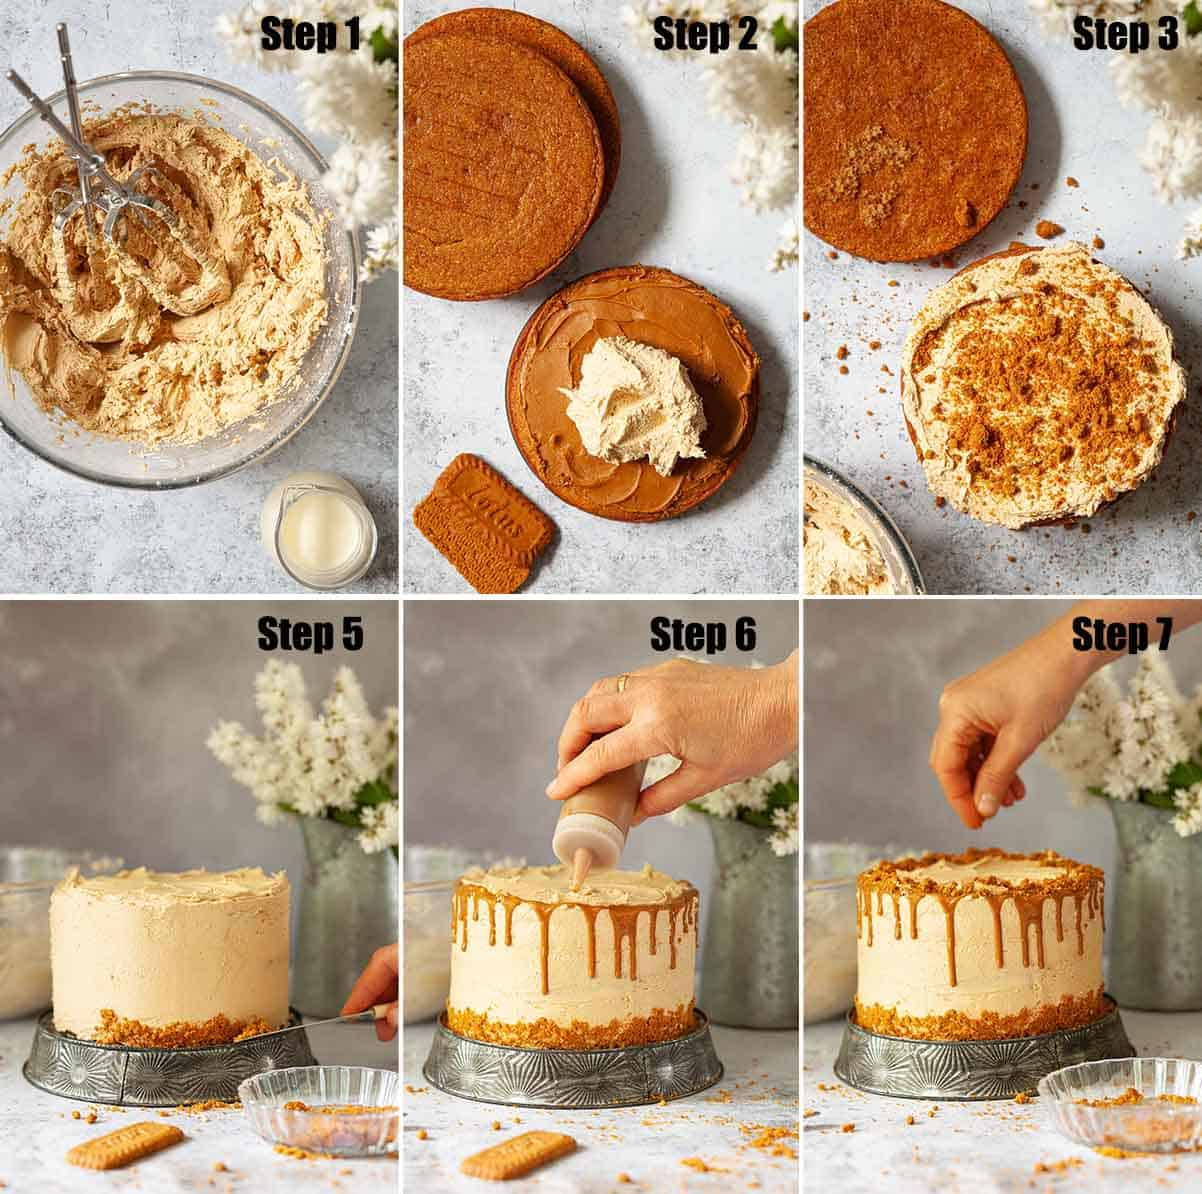 Collage of images showing a Biscoff layer cake being decorated